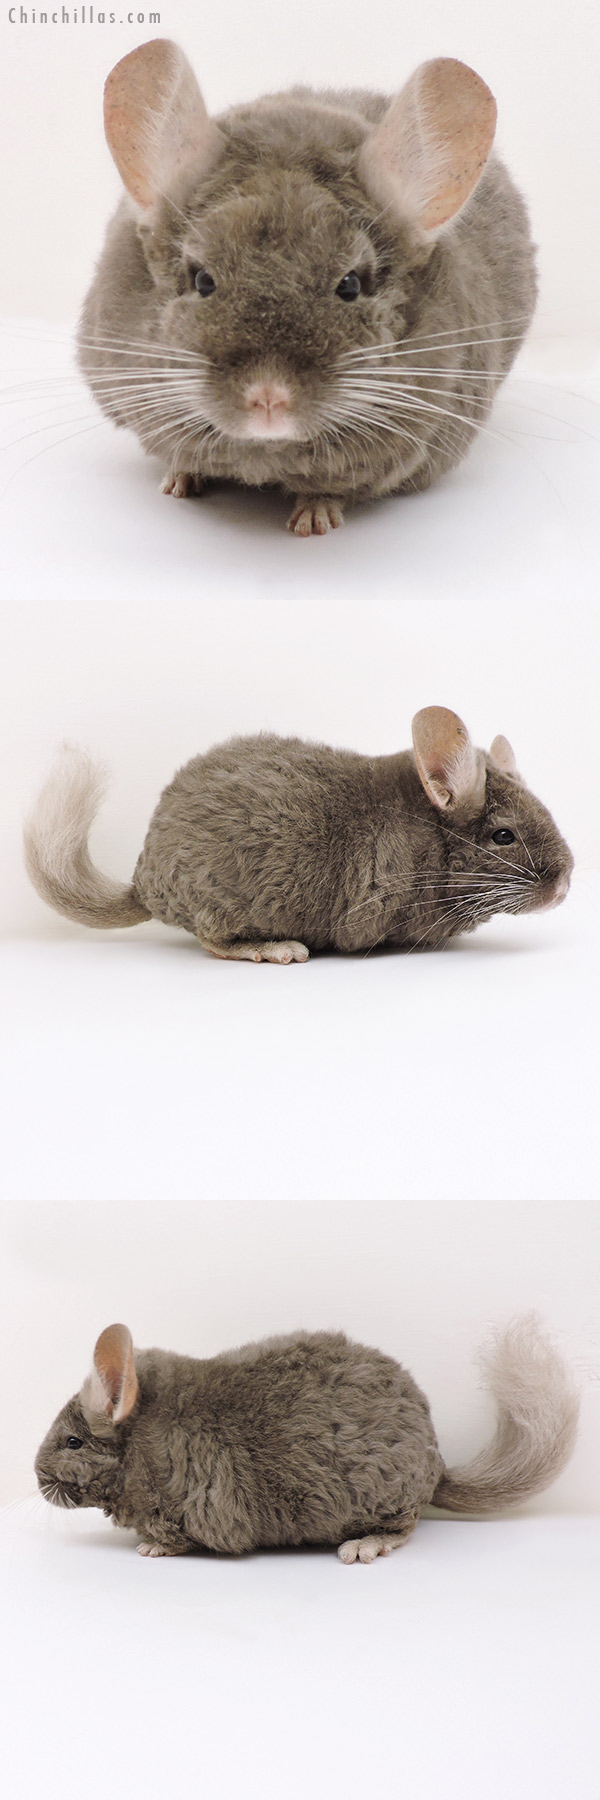 17177 Large Full Locken Tan Female Chinchilla